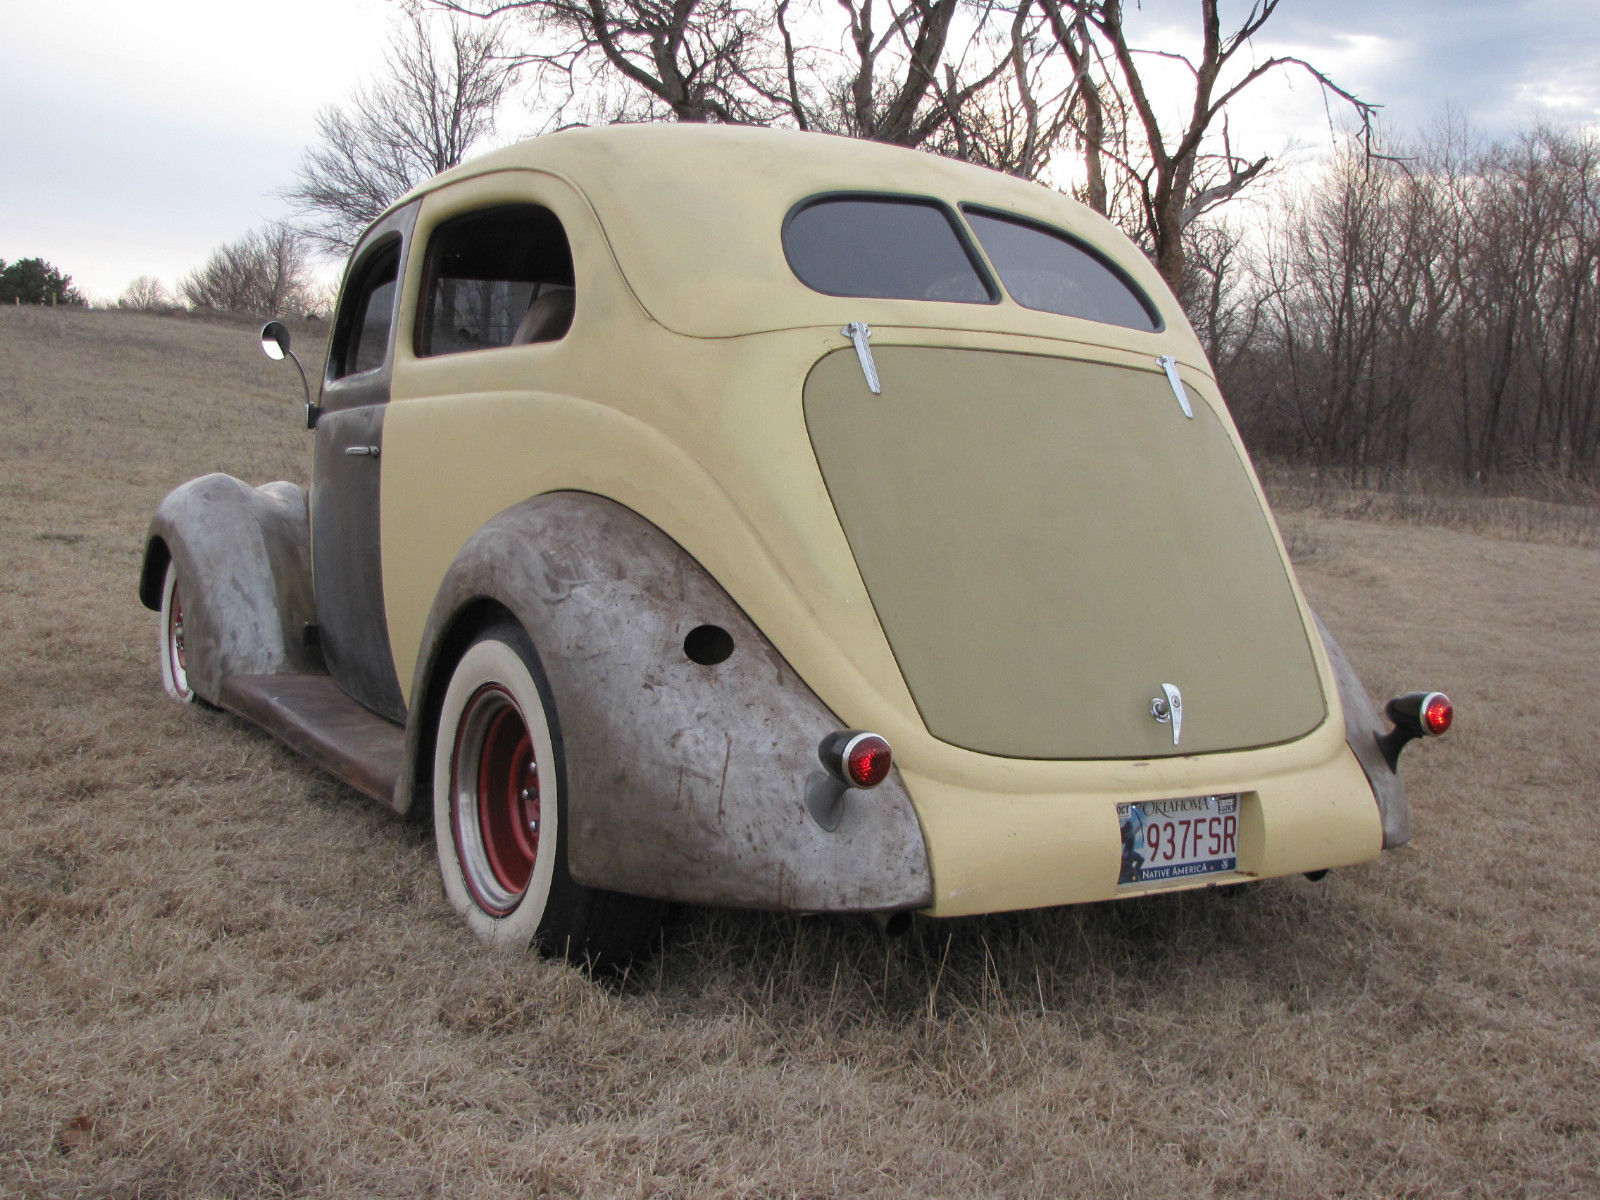 1937 ford slantback 2 door sedan running project with the patina rat rod look for 1937 ford two door sedan